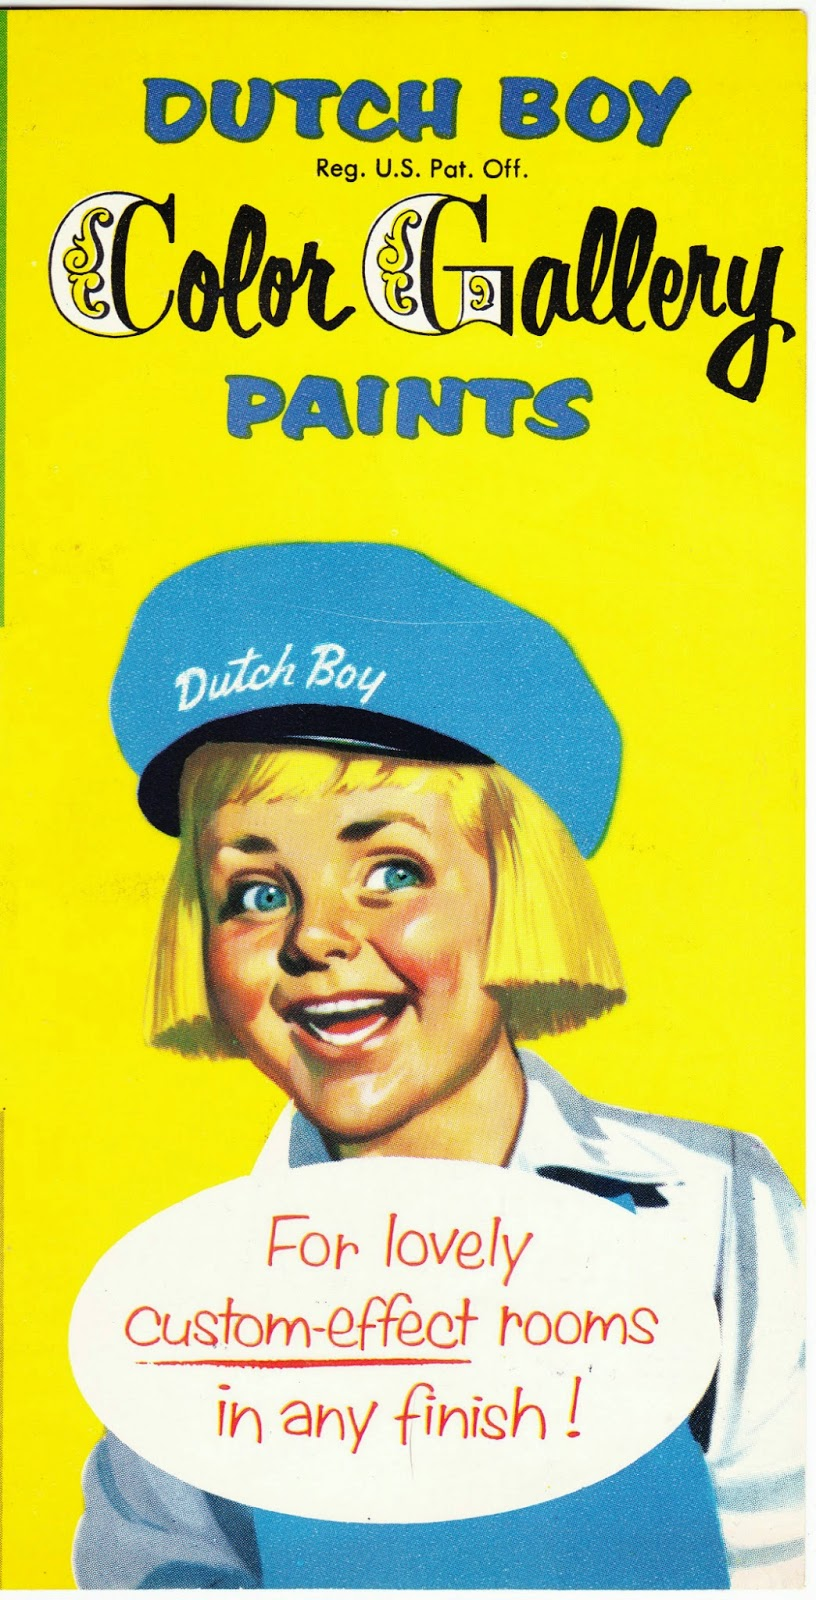 Vintage Pamphlet Touting The Dutch Boy Color Gallery